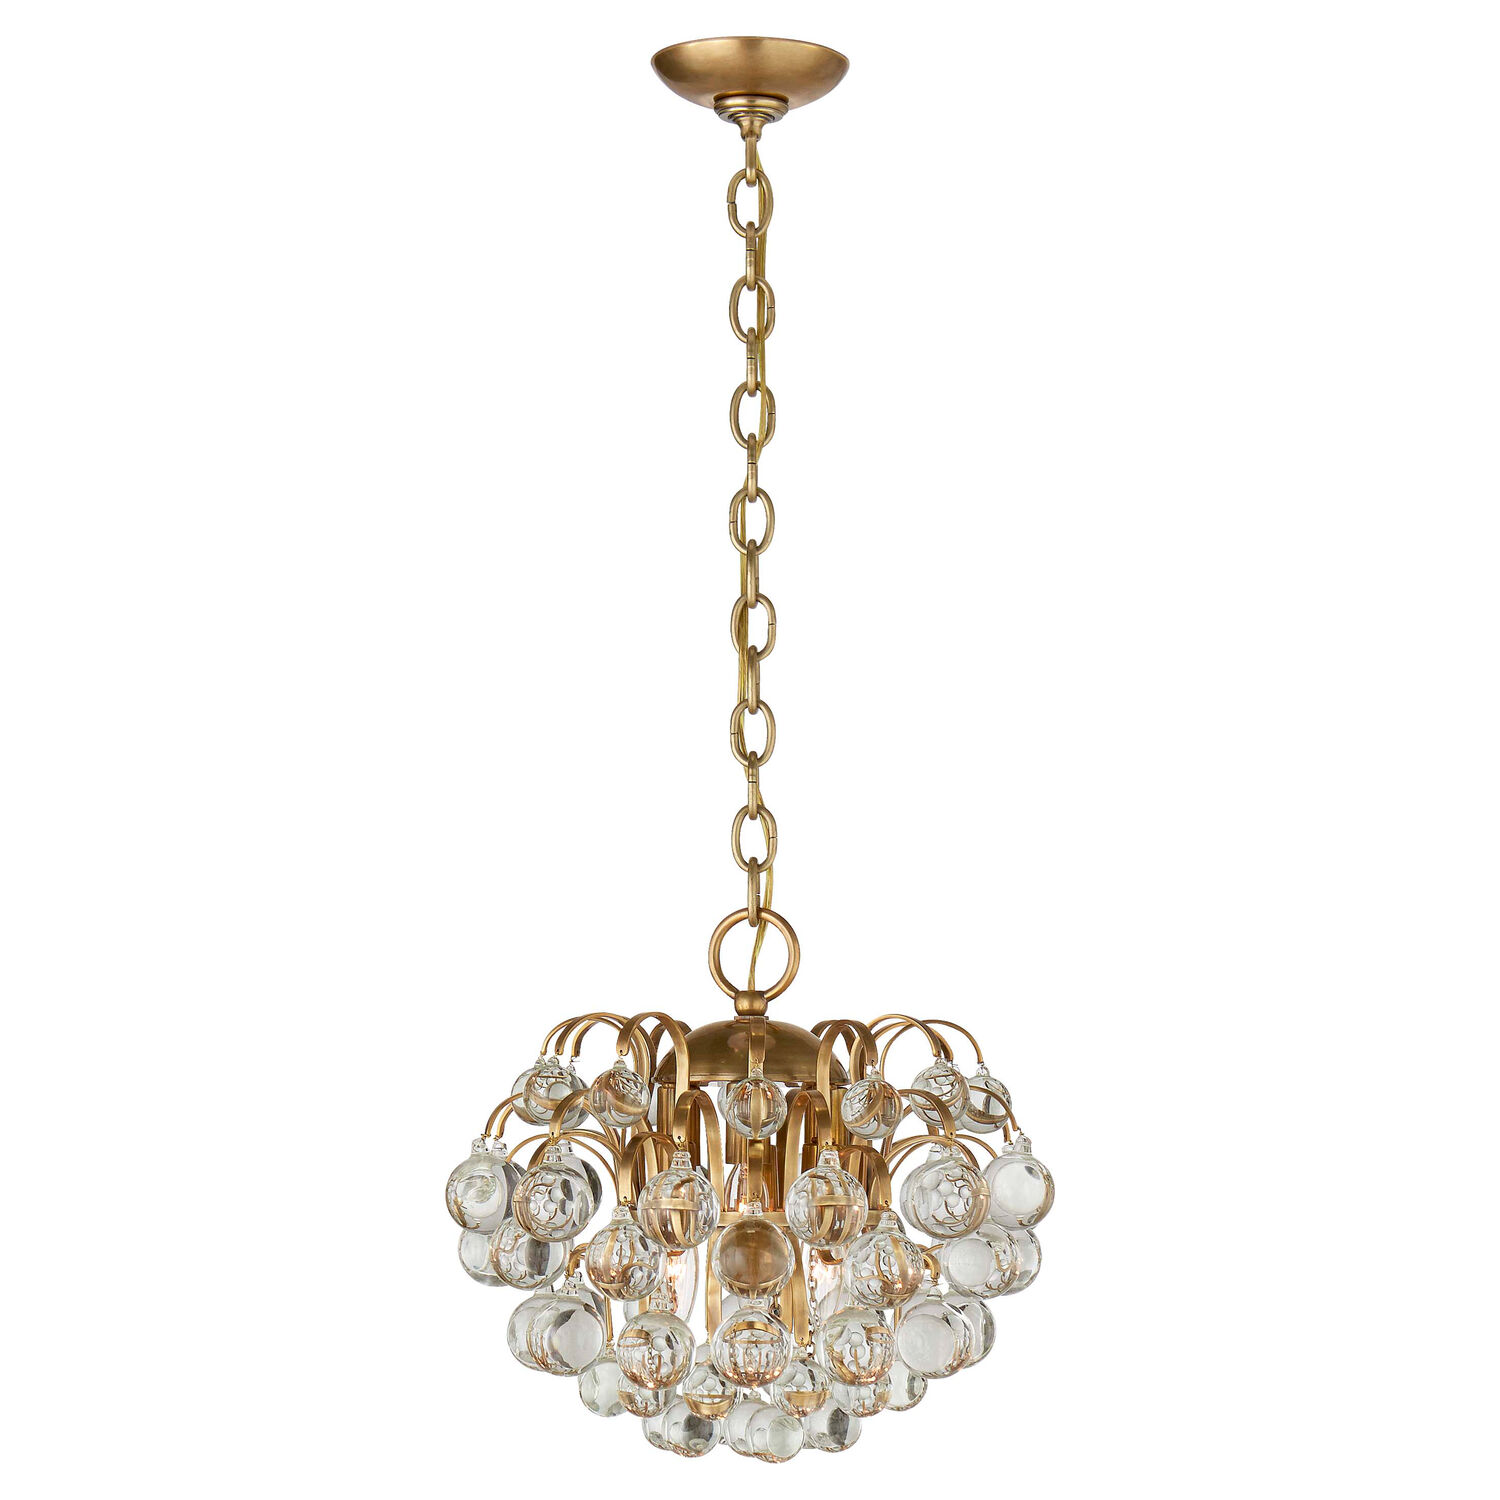 Bellvale Small Chandelier